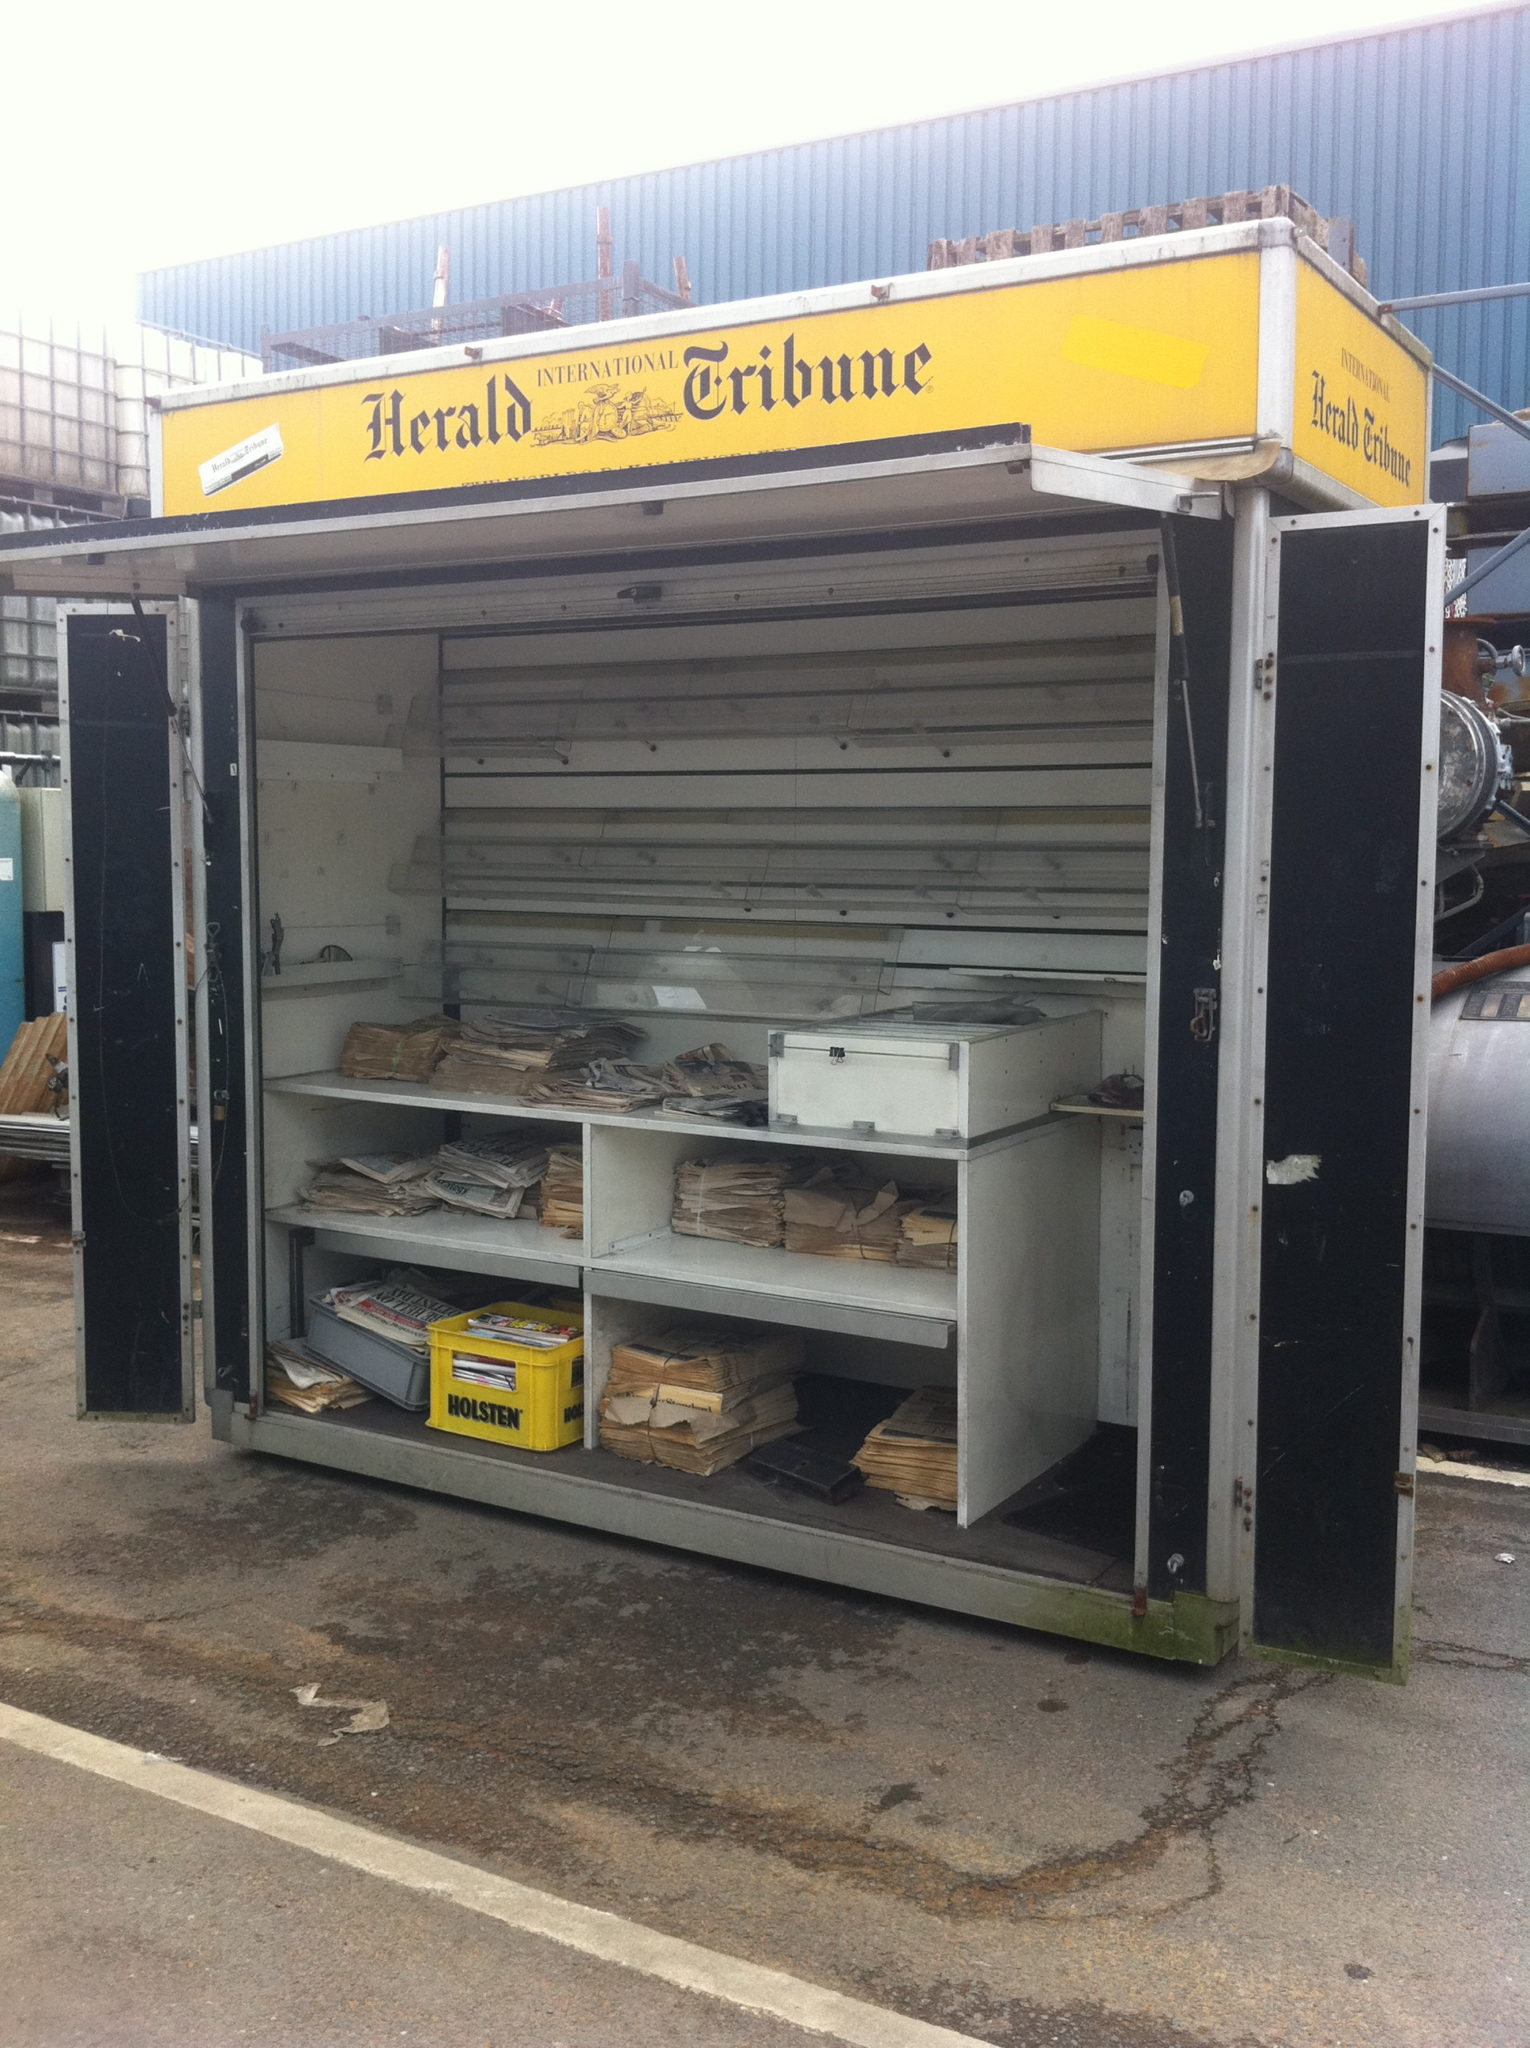 Newspaper Souvenir Stand -